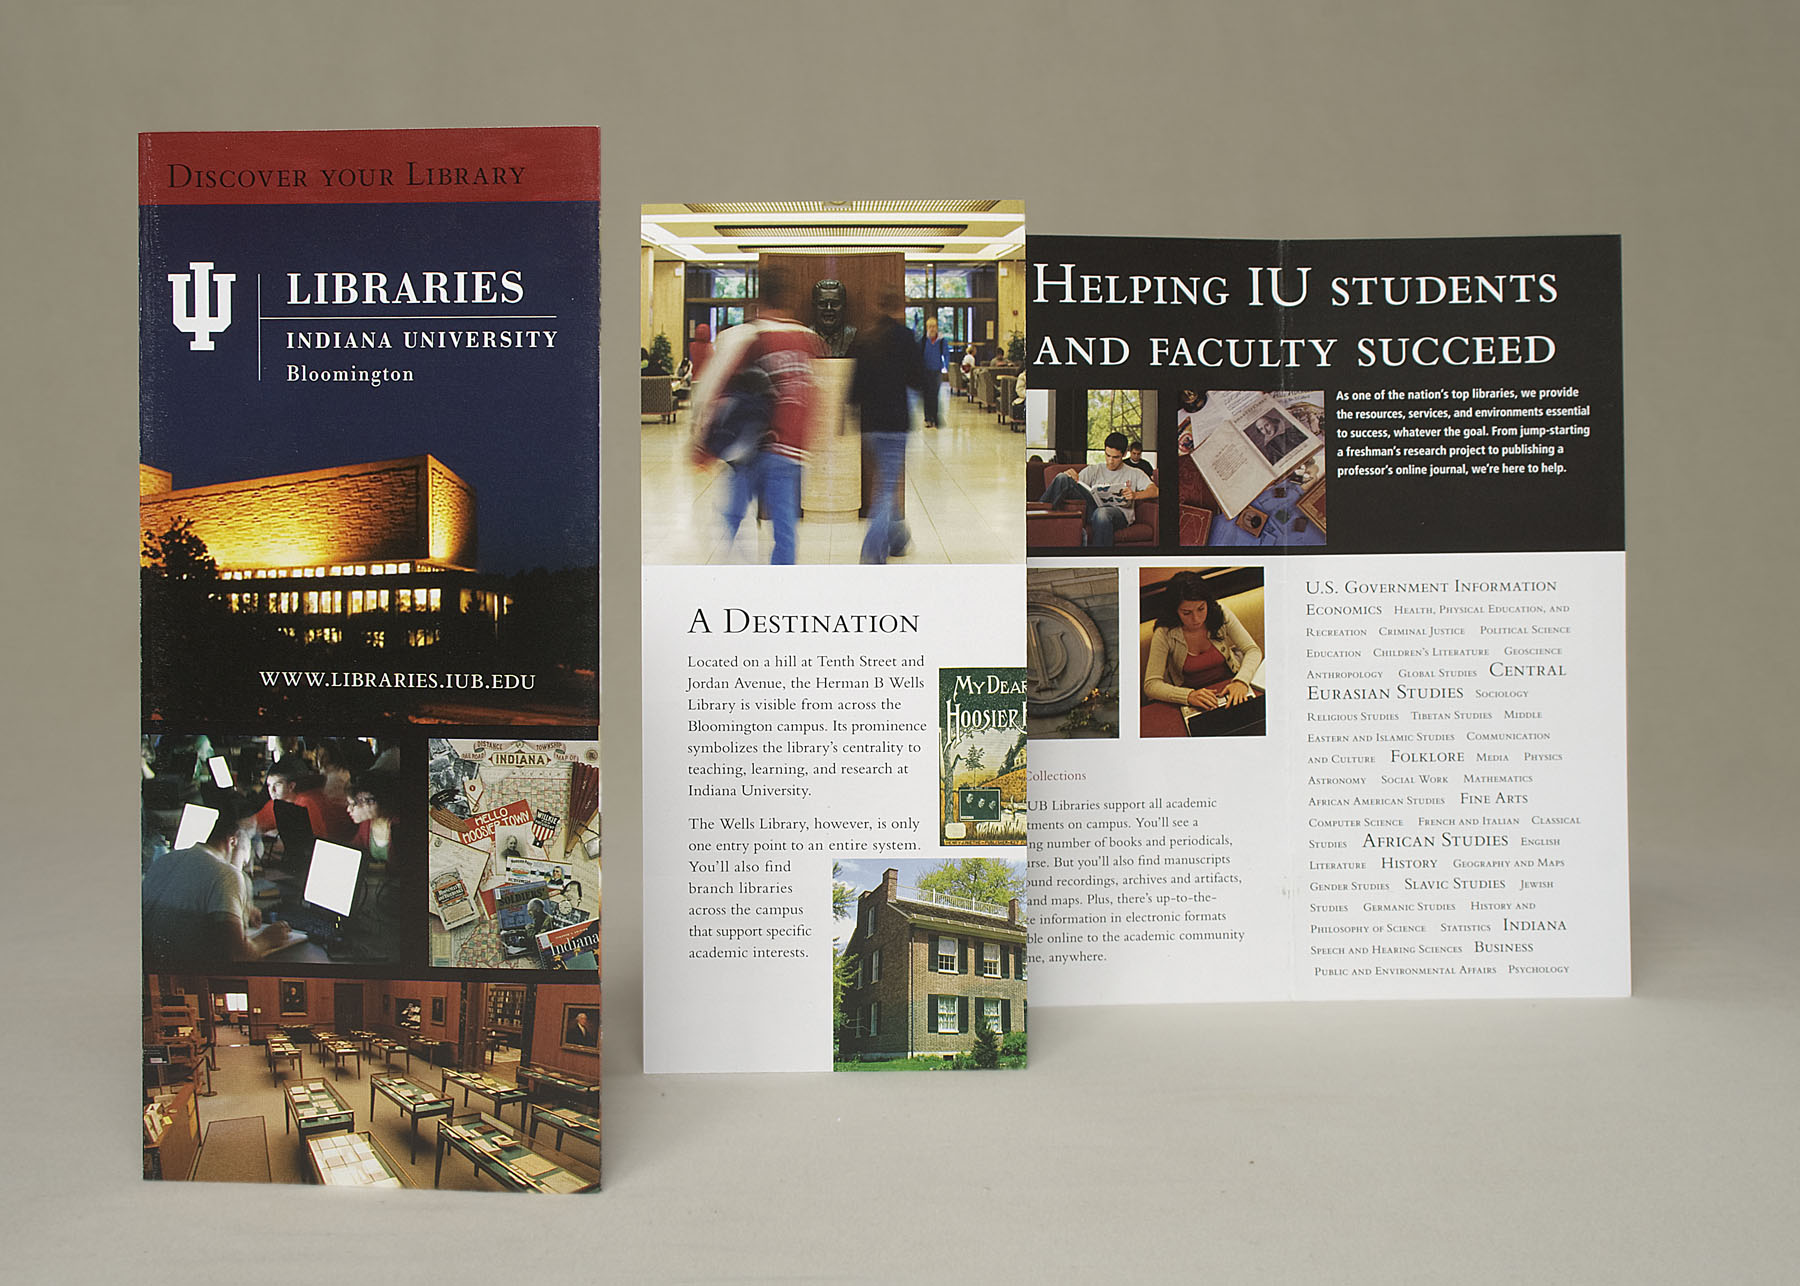 IUB LIBRARIES: Discover Your Library